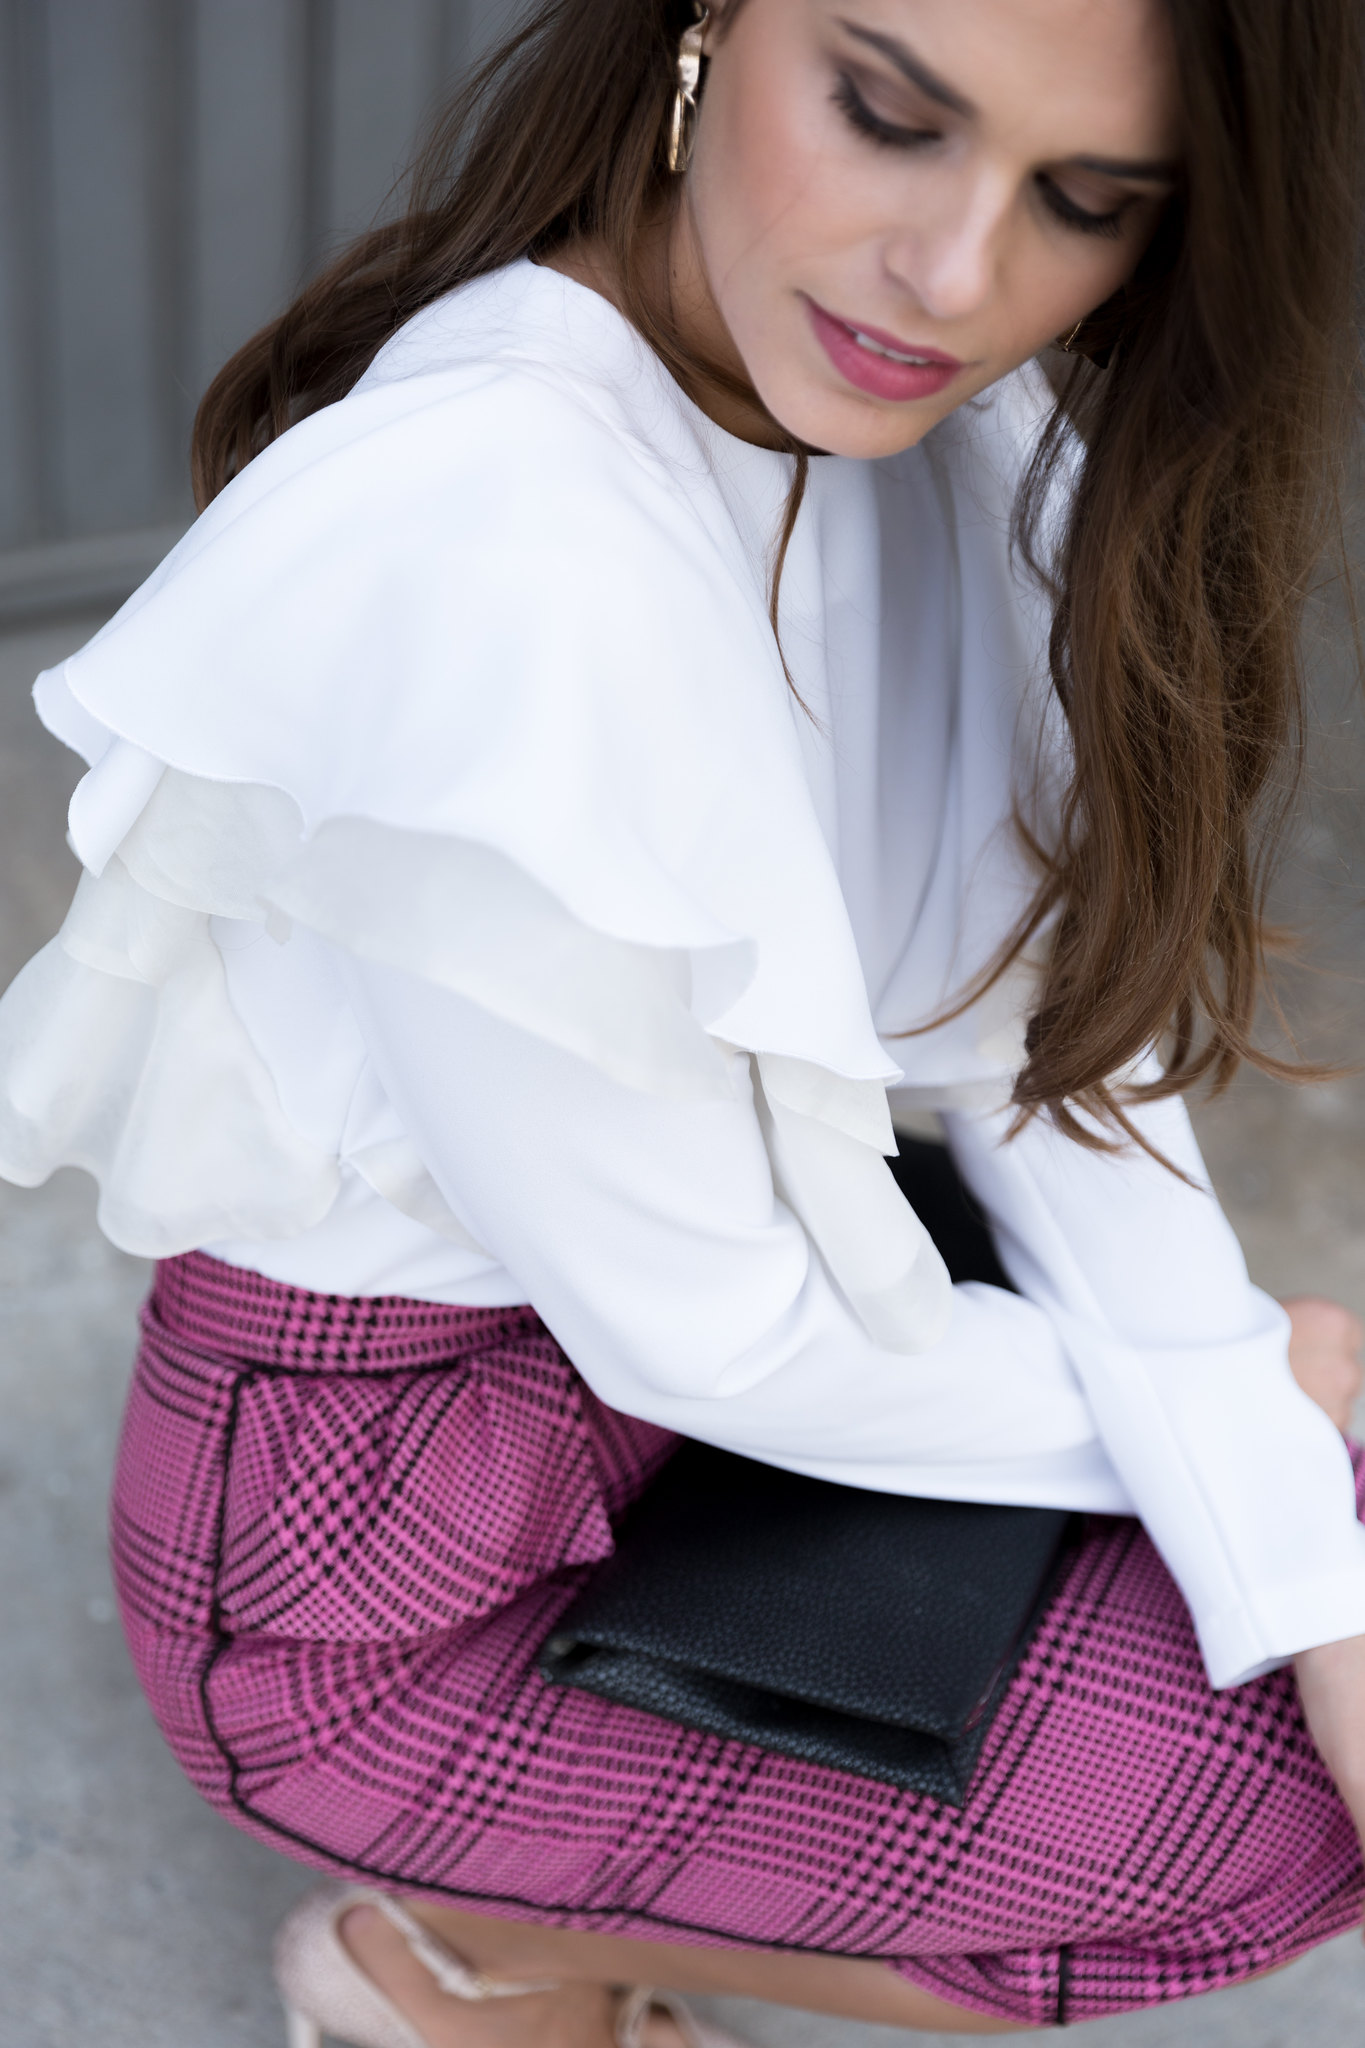 Jessie Chanes Seams for a desire - pink black houndstooth skirt white top apparentia -4